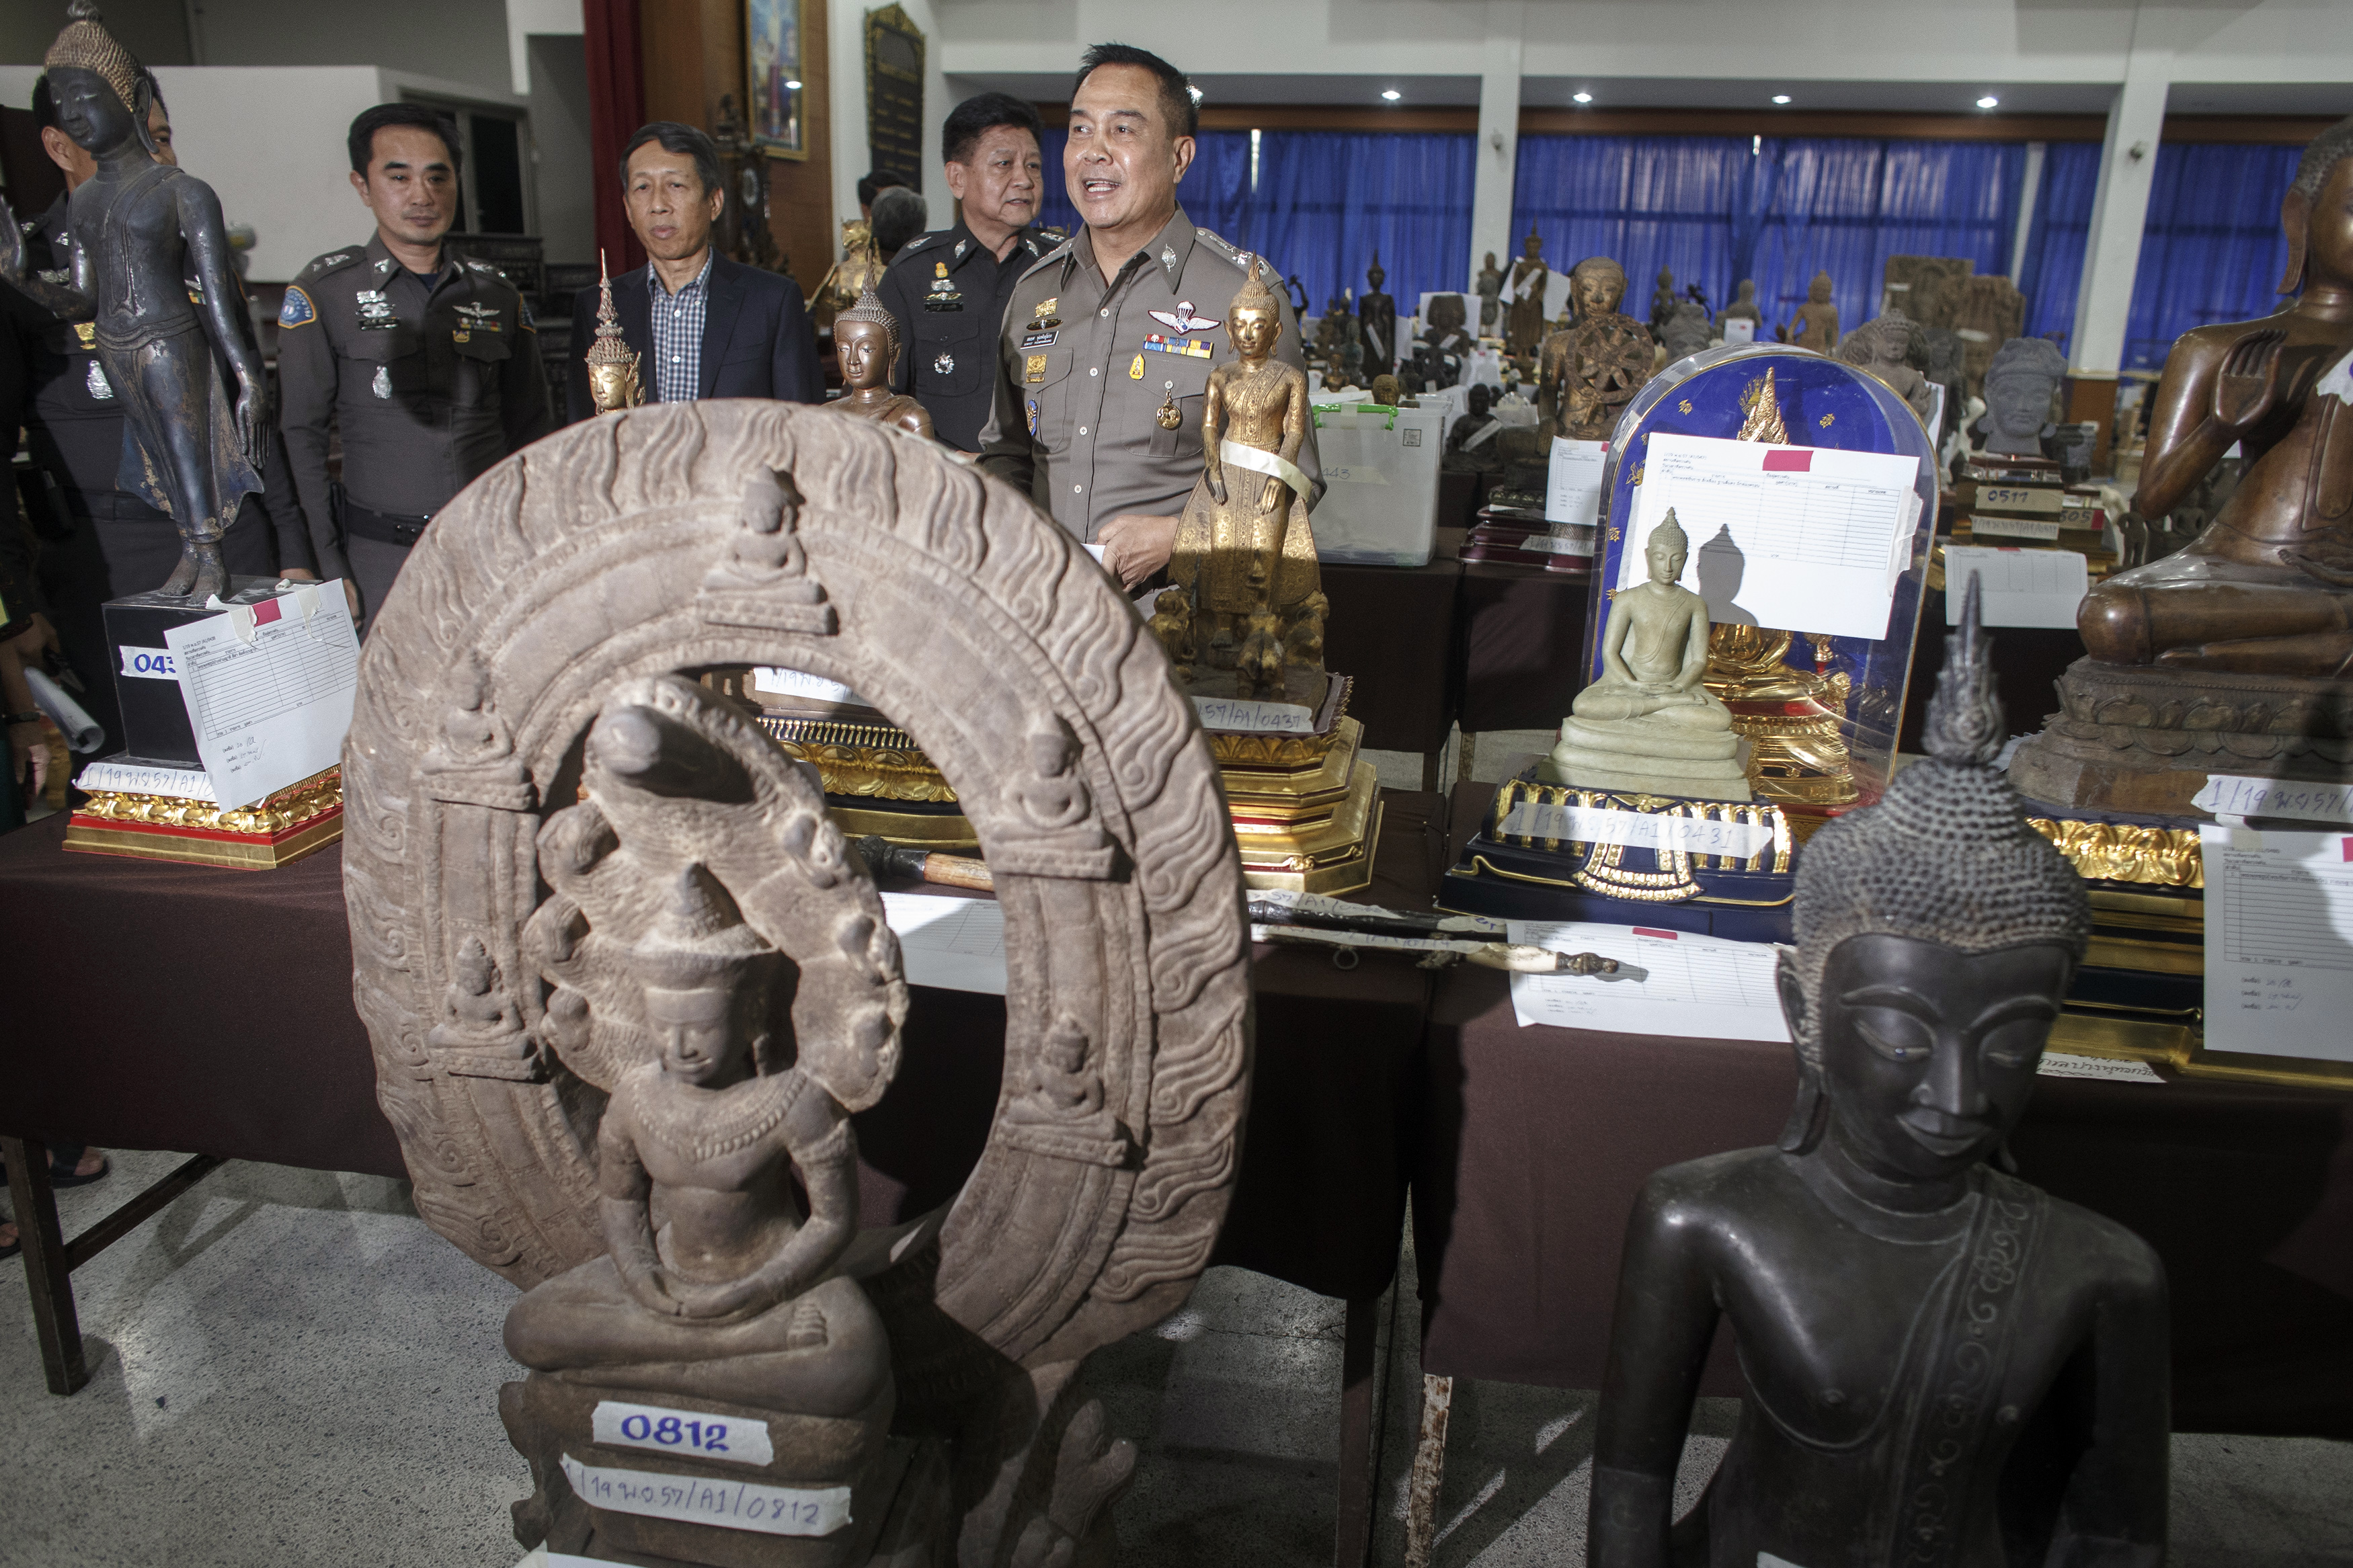 General Somyot Poompanmuang, chief of Royal Thai Police, stands among antique Buddha statues that were seized during an investigation into former Central Investigation Bureau chief Pongpat Chayaphan, at a military base in Bangkok on Nov. 26, 2014